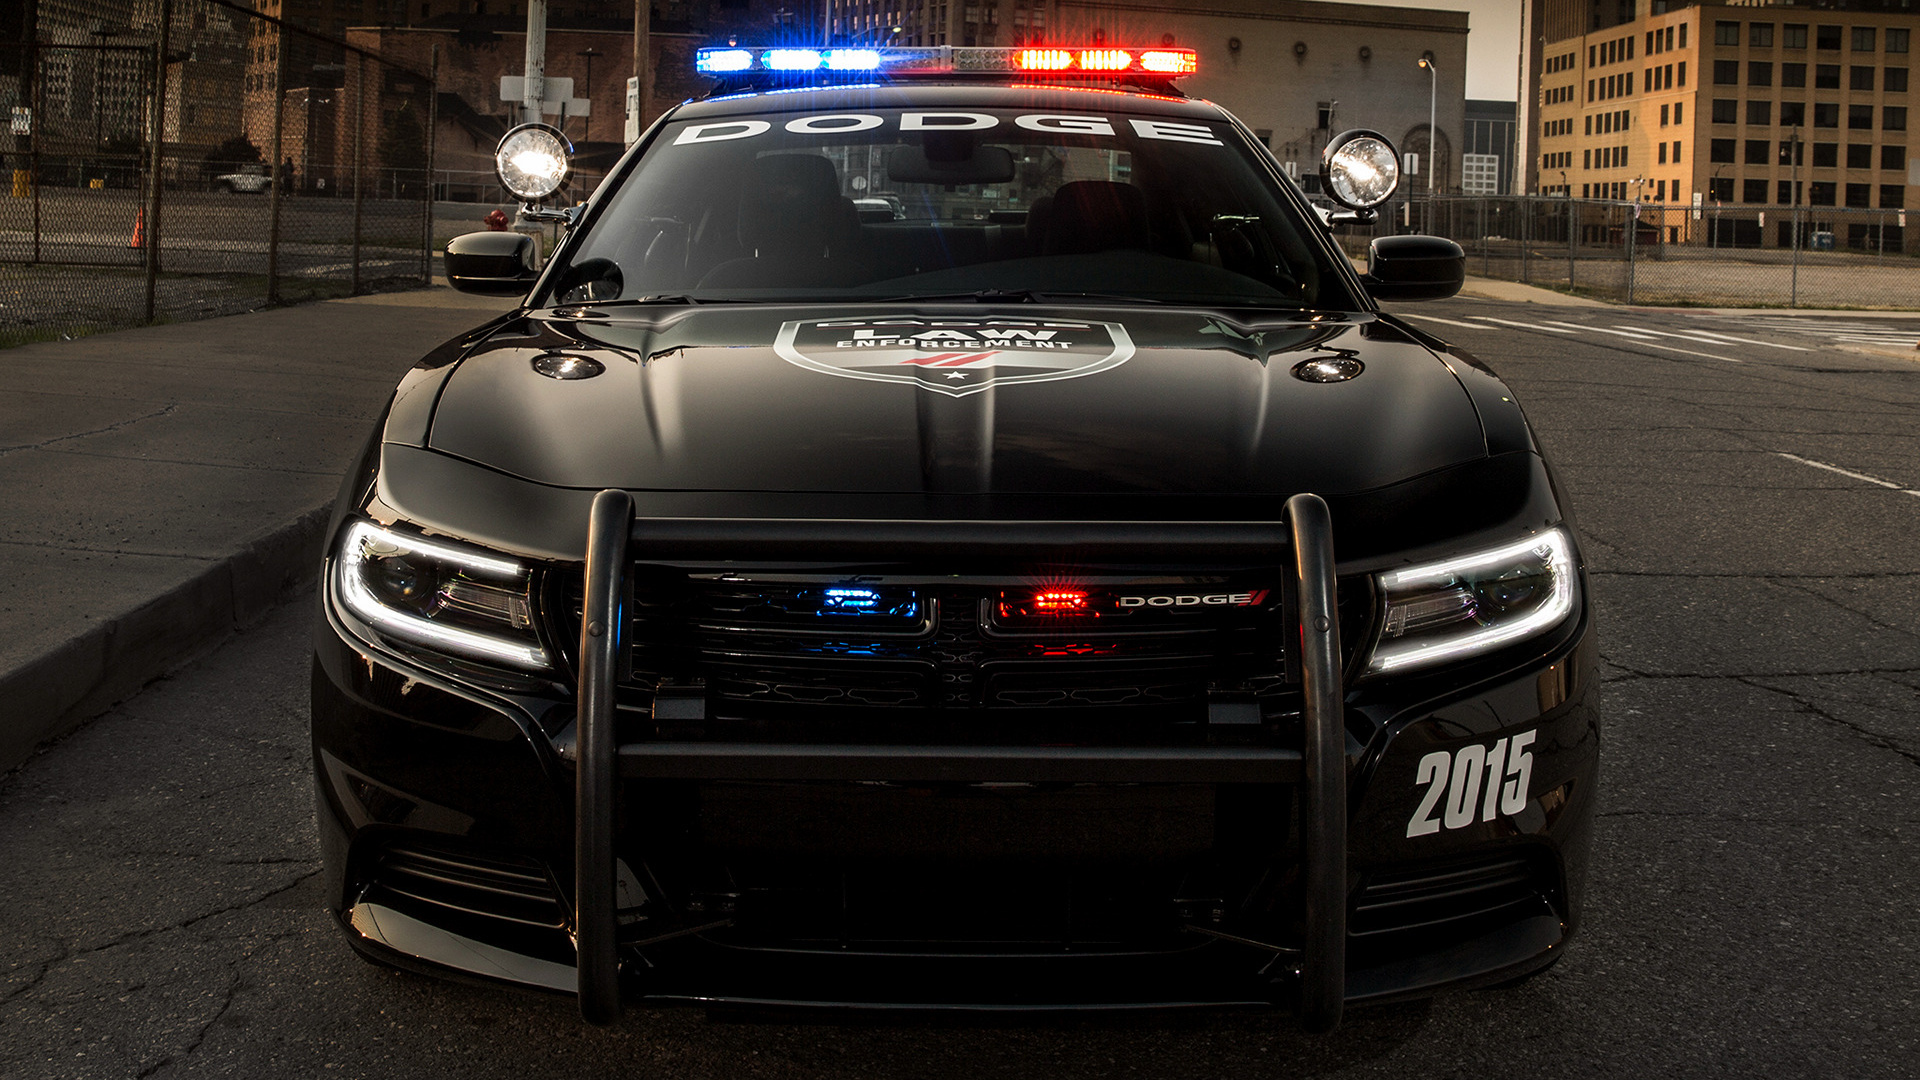 Dodge Charger Pursuit Awd Wallpaper Hd on Toyota Land Cruiser 2014